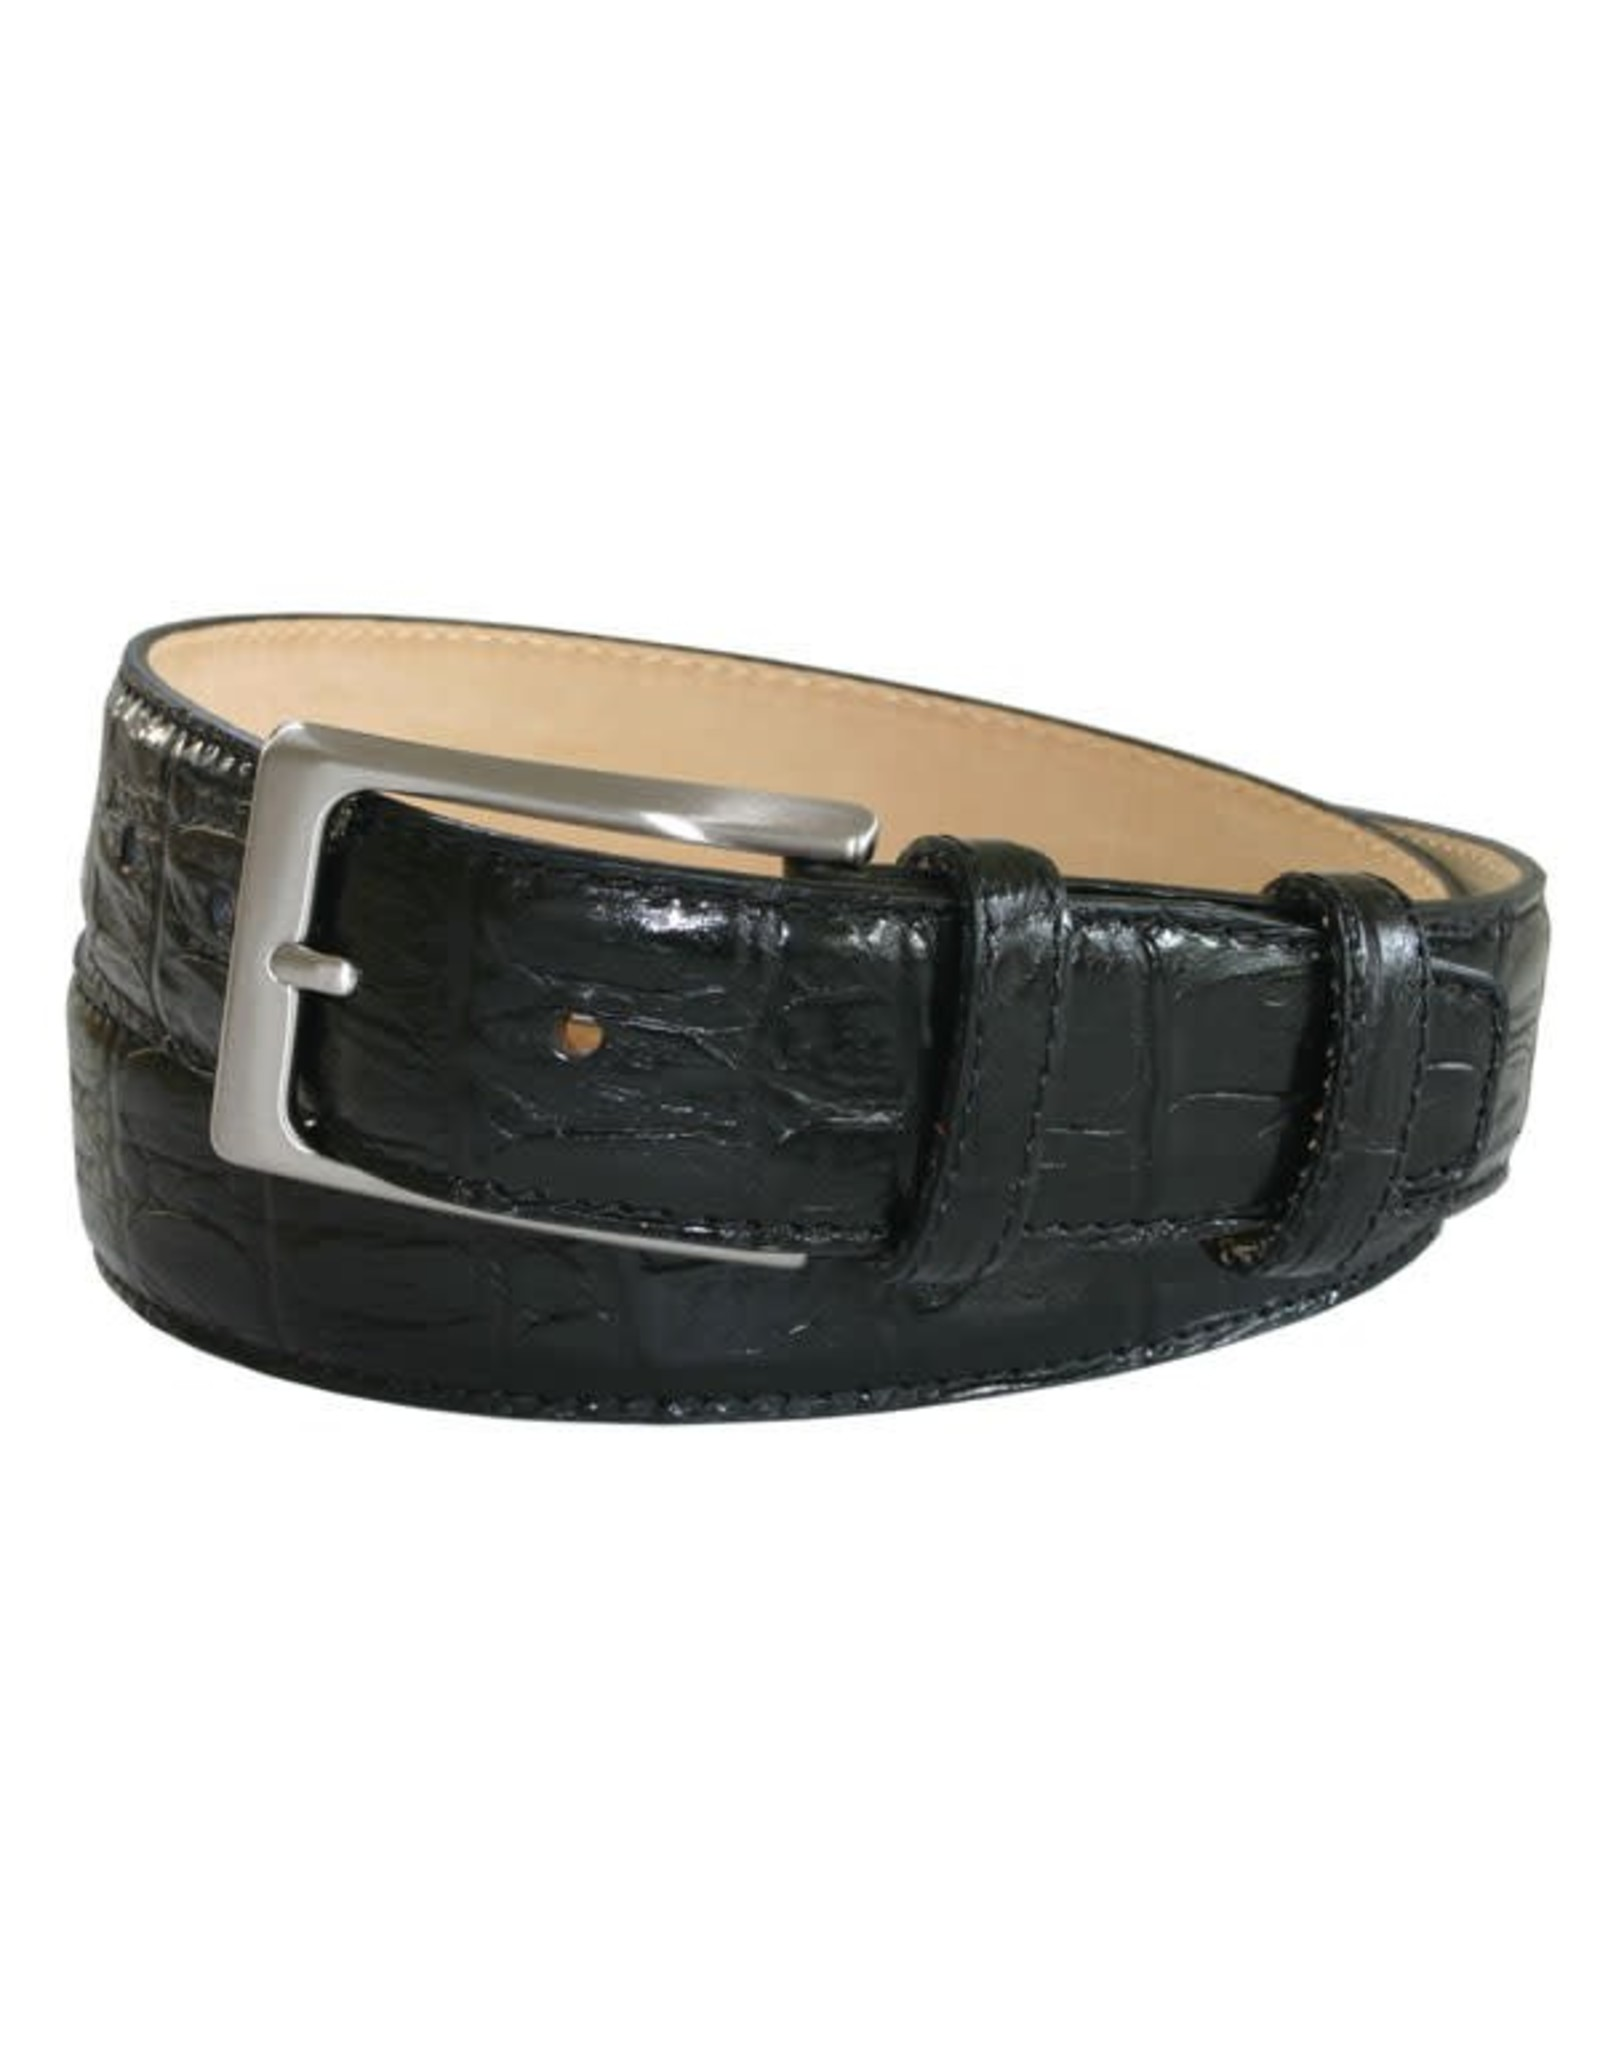 Robert Charles RC Black croc belt w16